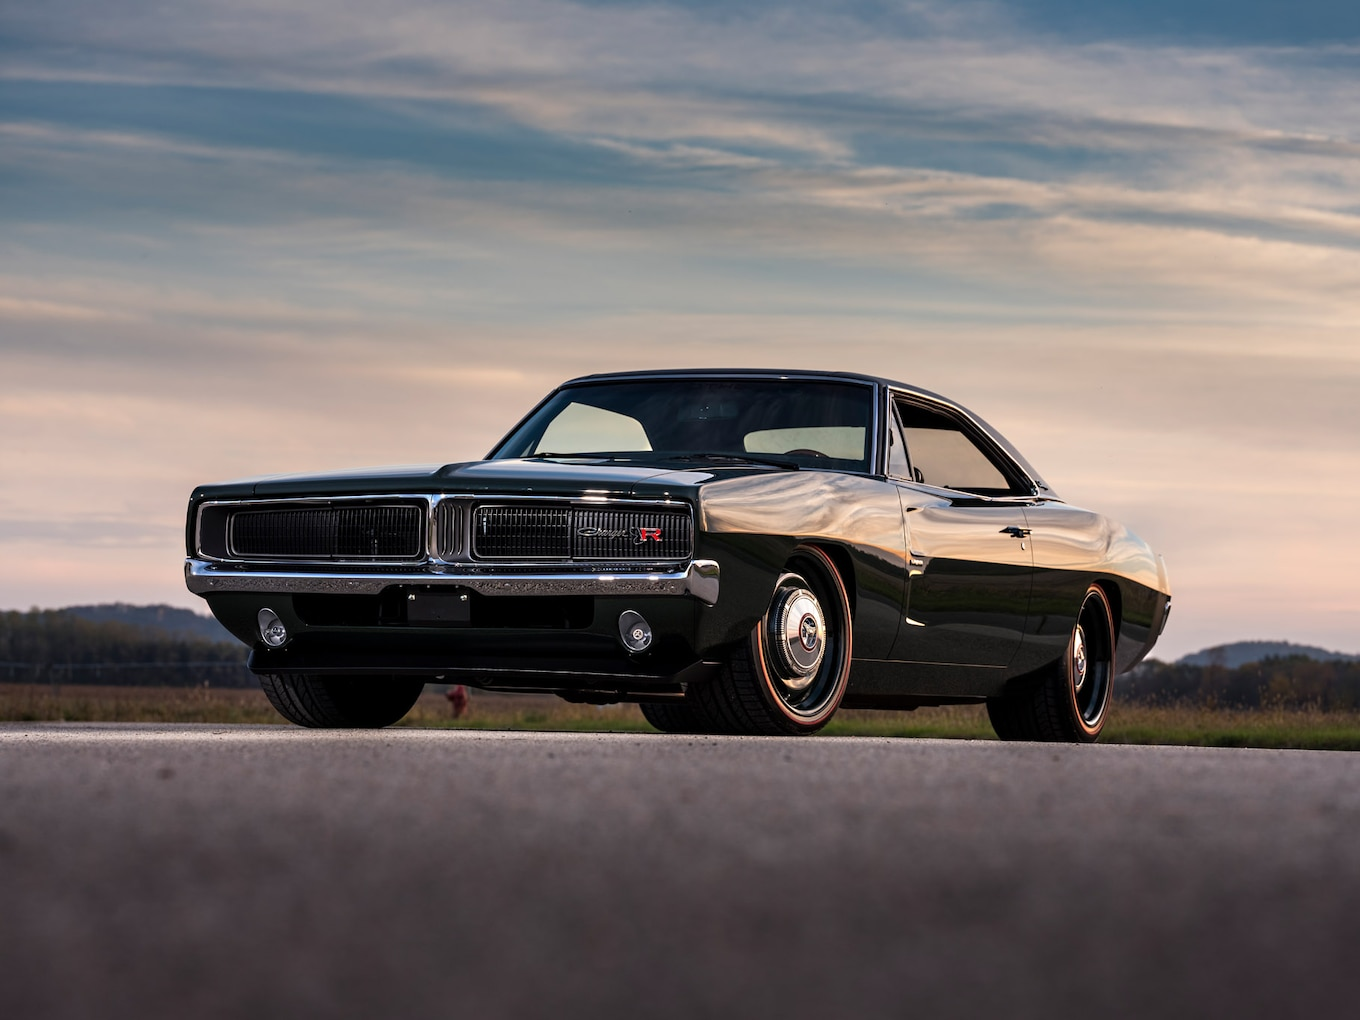 American Muscle Car Mobile Wallpaper Hd Ringbrothers 1969 Dodge Charger Is All About Subtlety